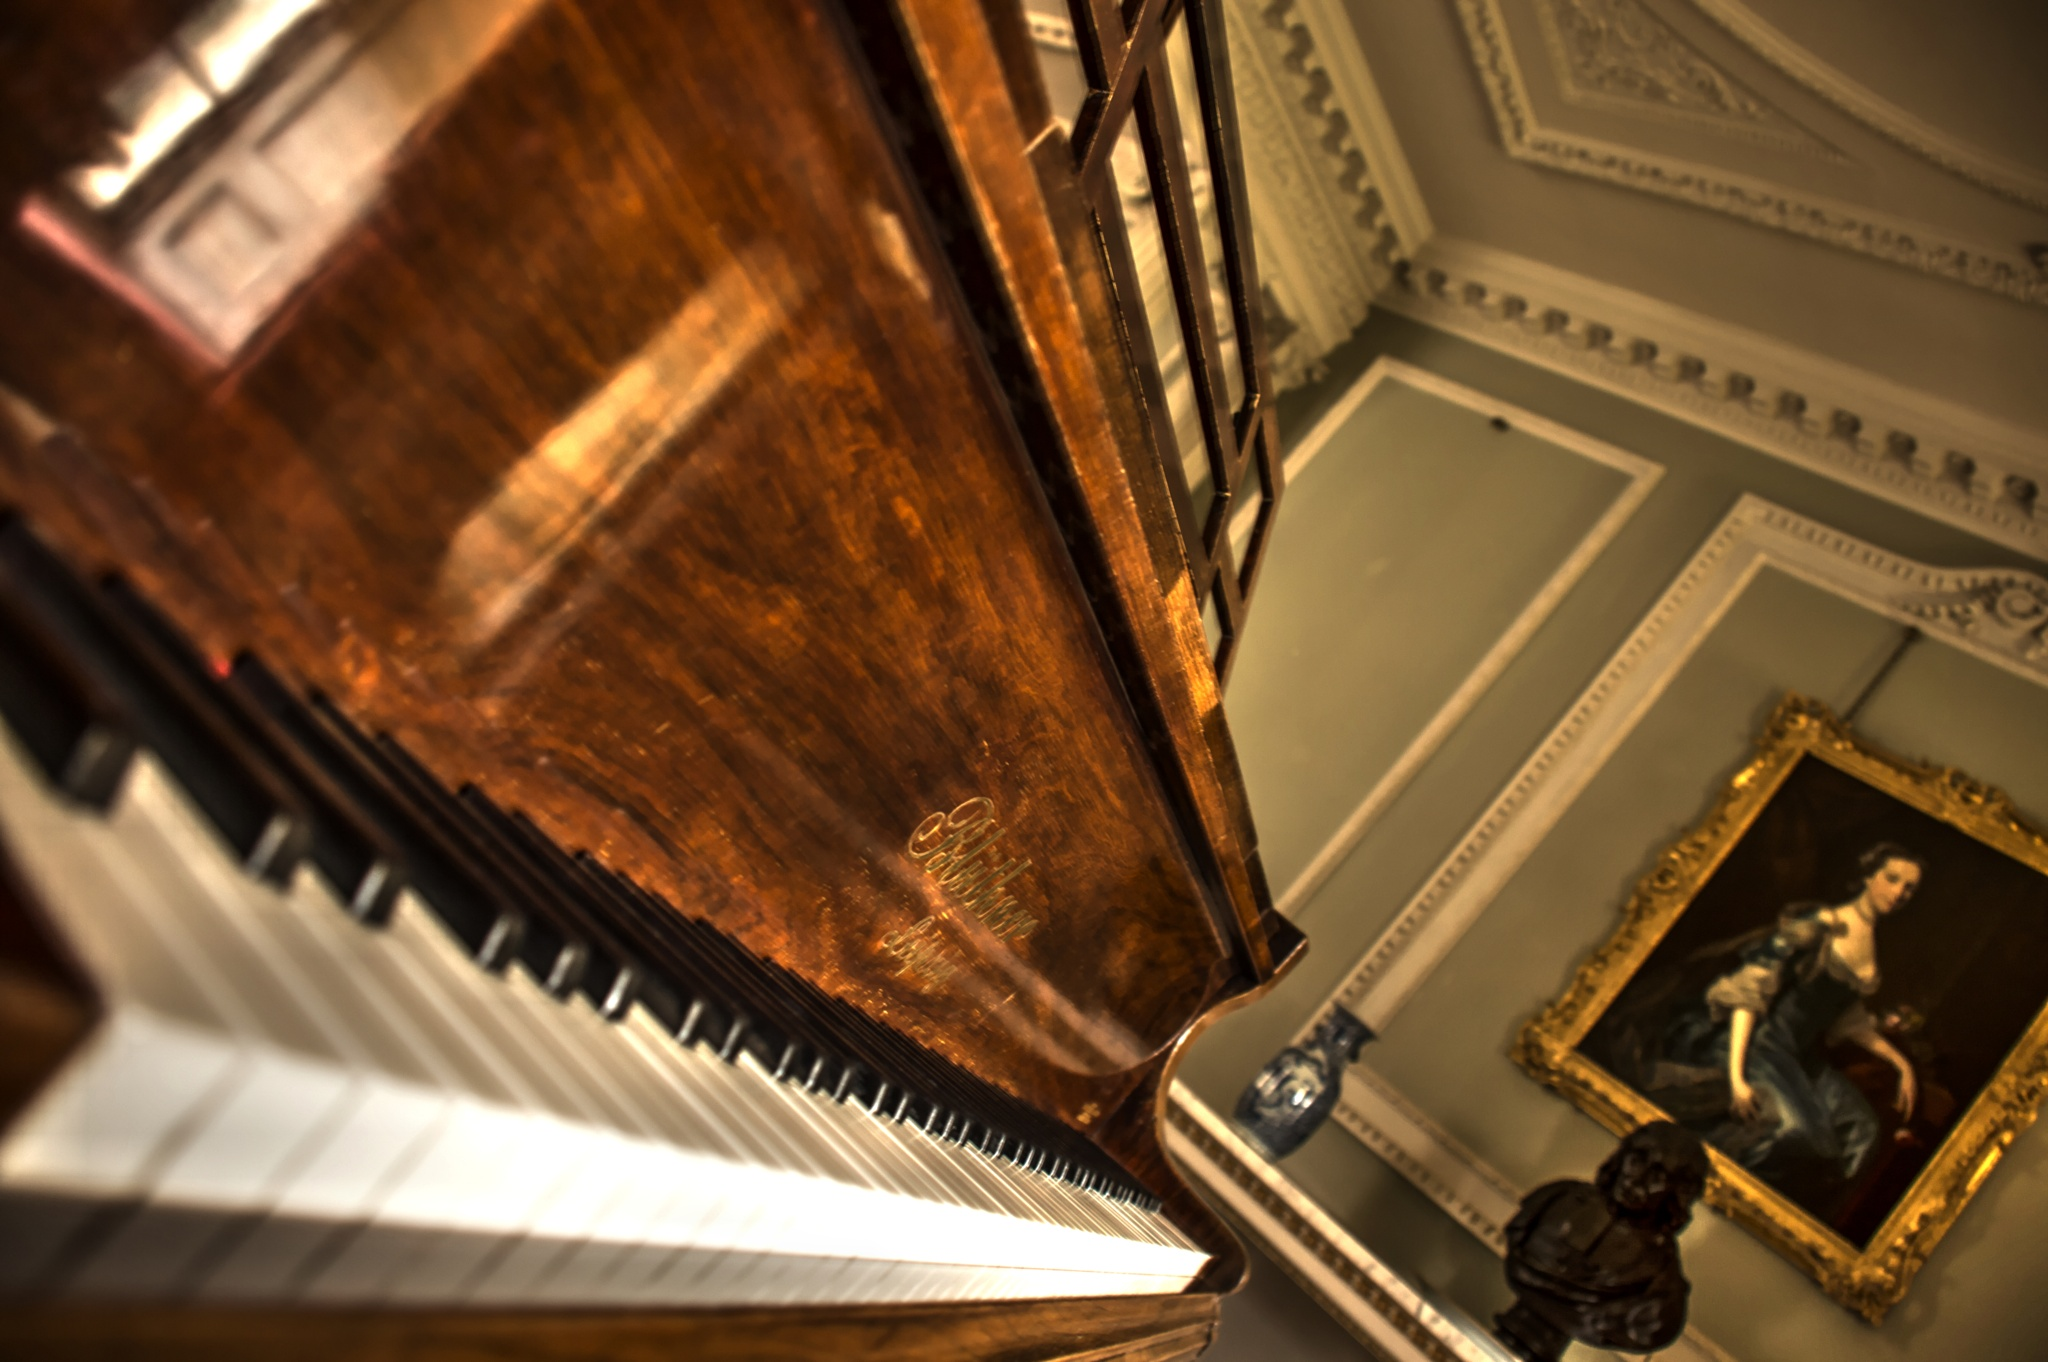 Piano by Chris Porter